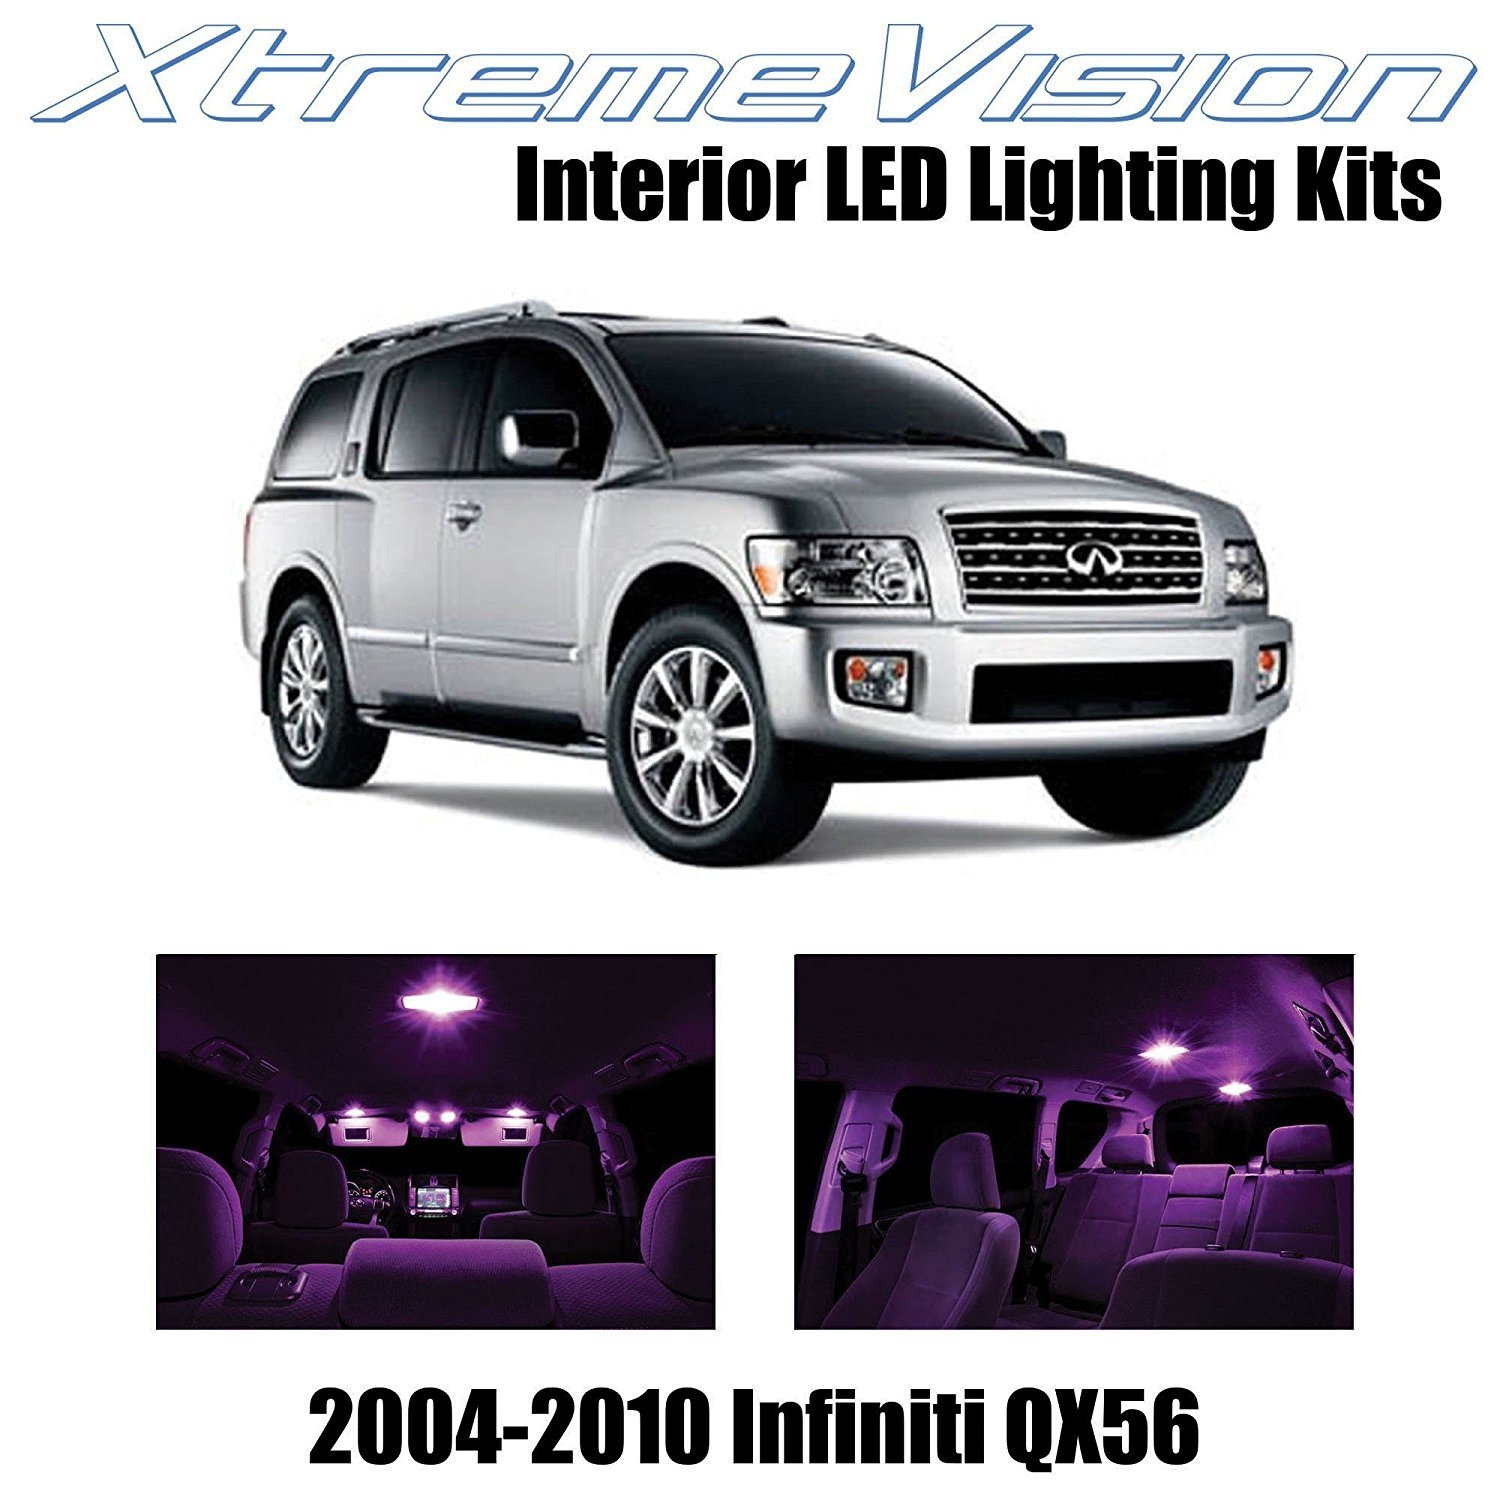 XtremeVision LED for Infiniti QX56 2004-2010 (13 Pieces) Pure White Premium Interior LED Kit Package + Installation Tool